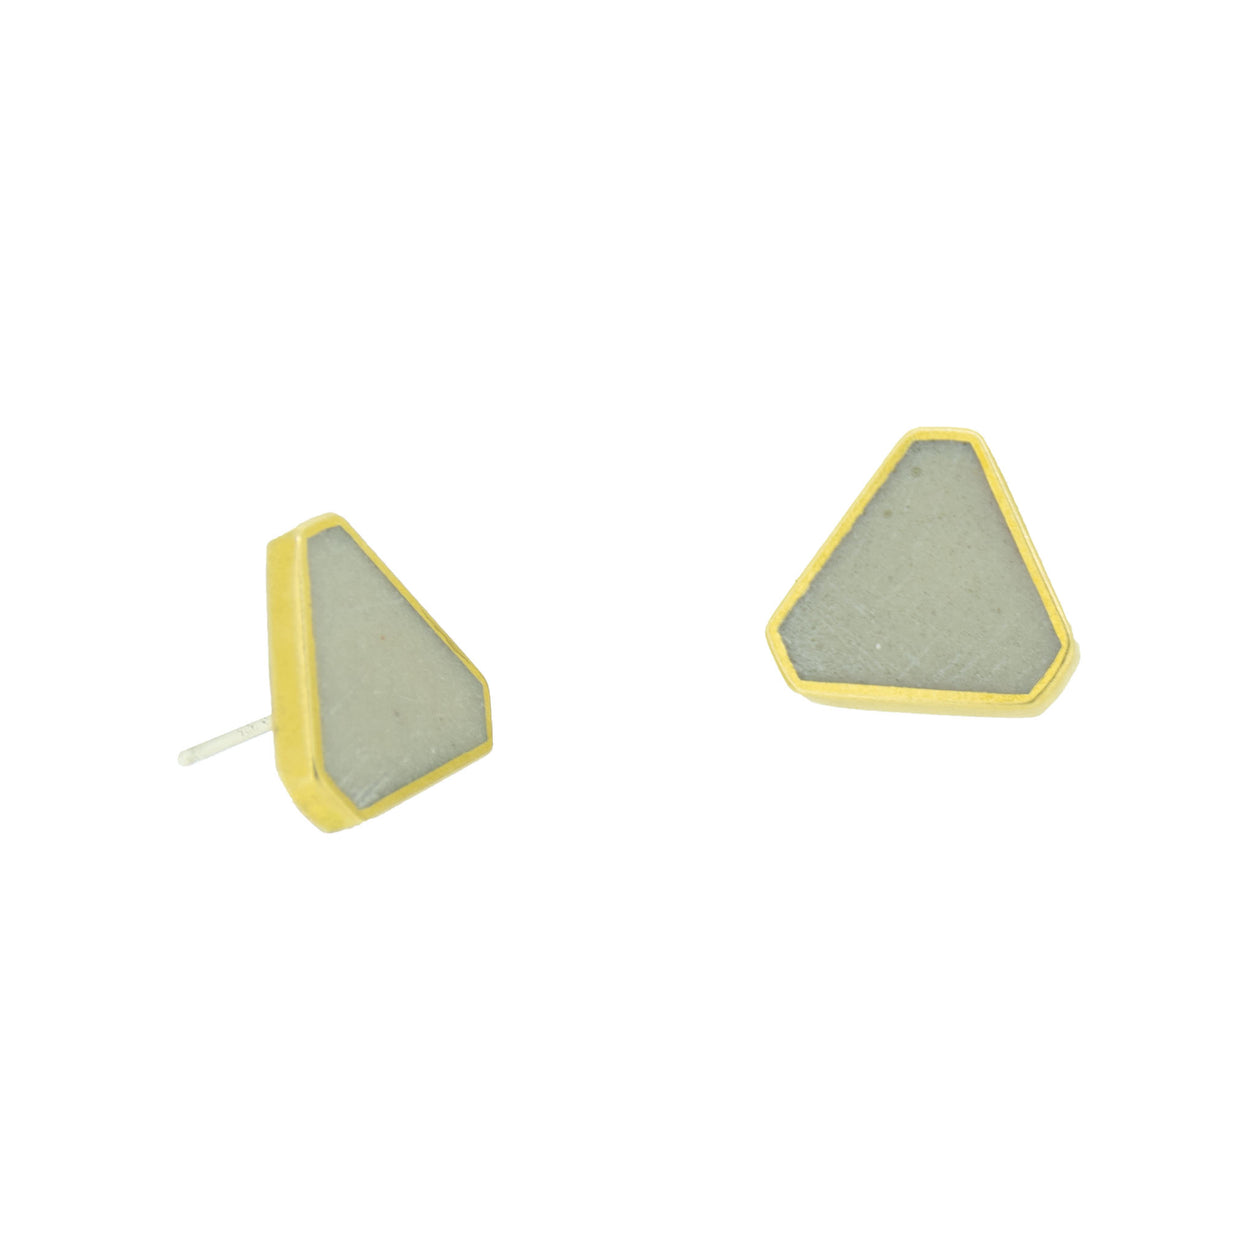 CLUSTER STUD EARRINGS BRASS + CONCRETE White